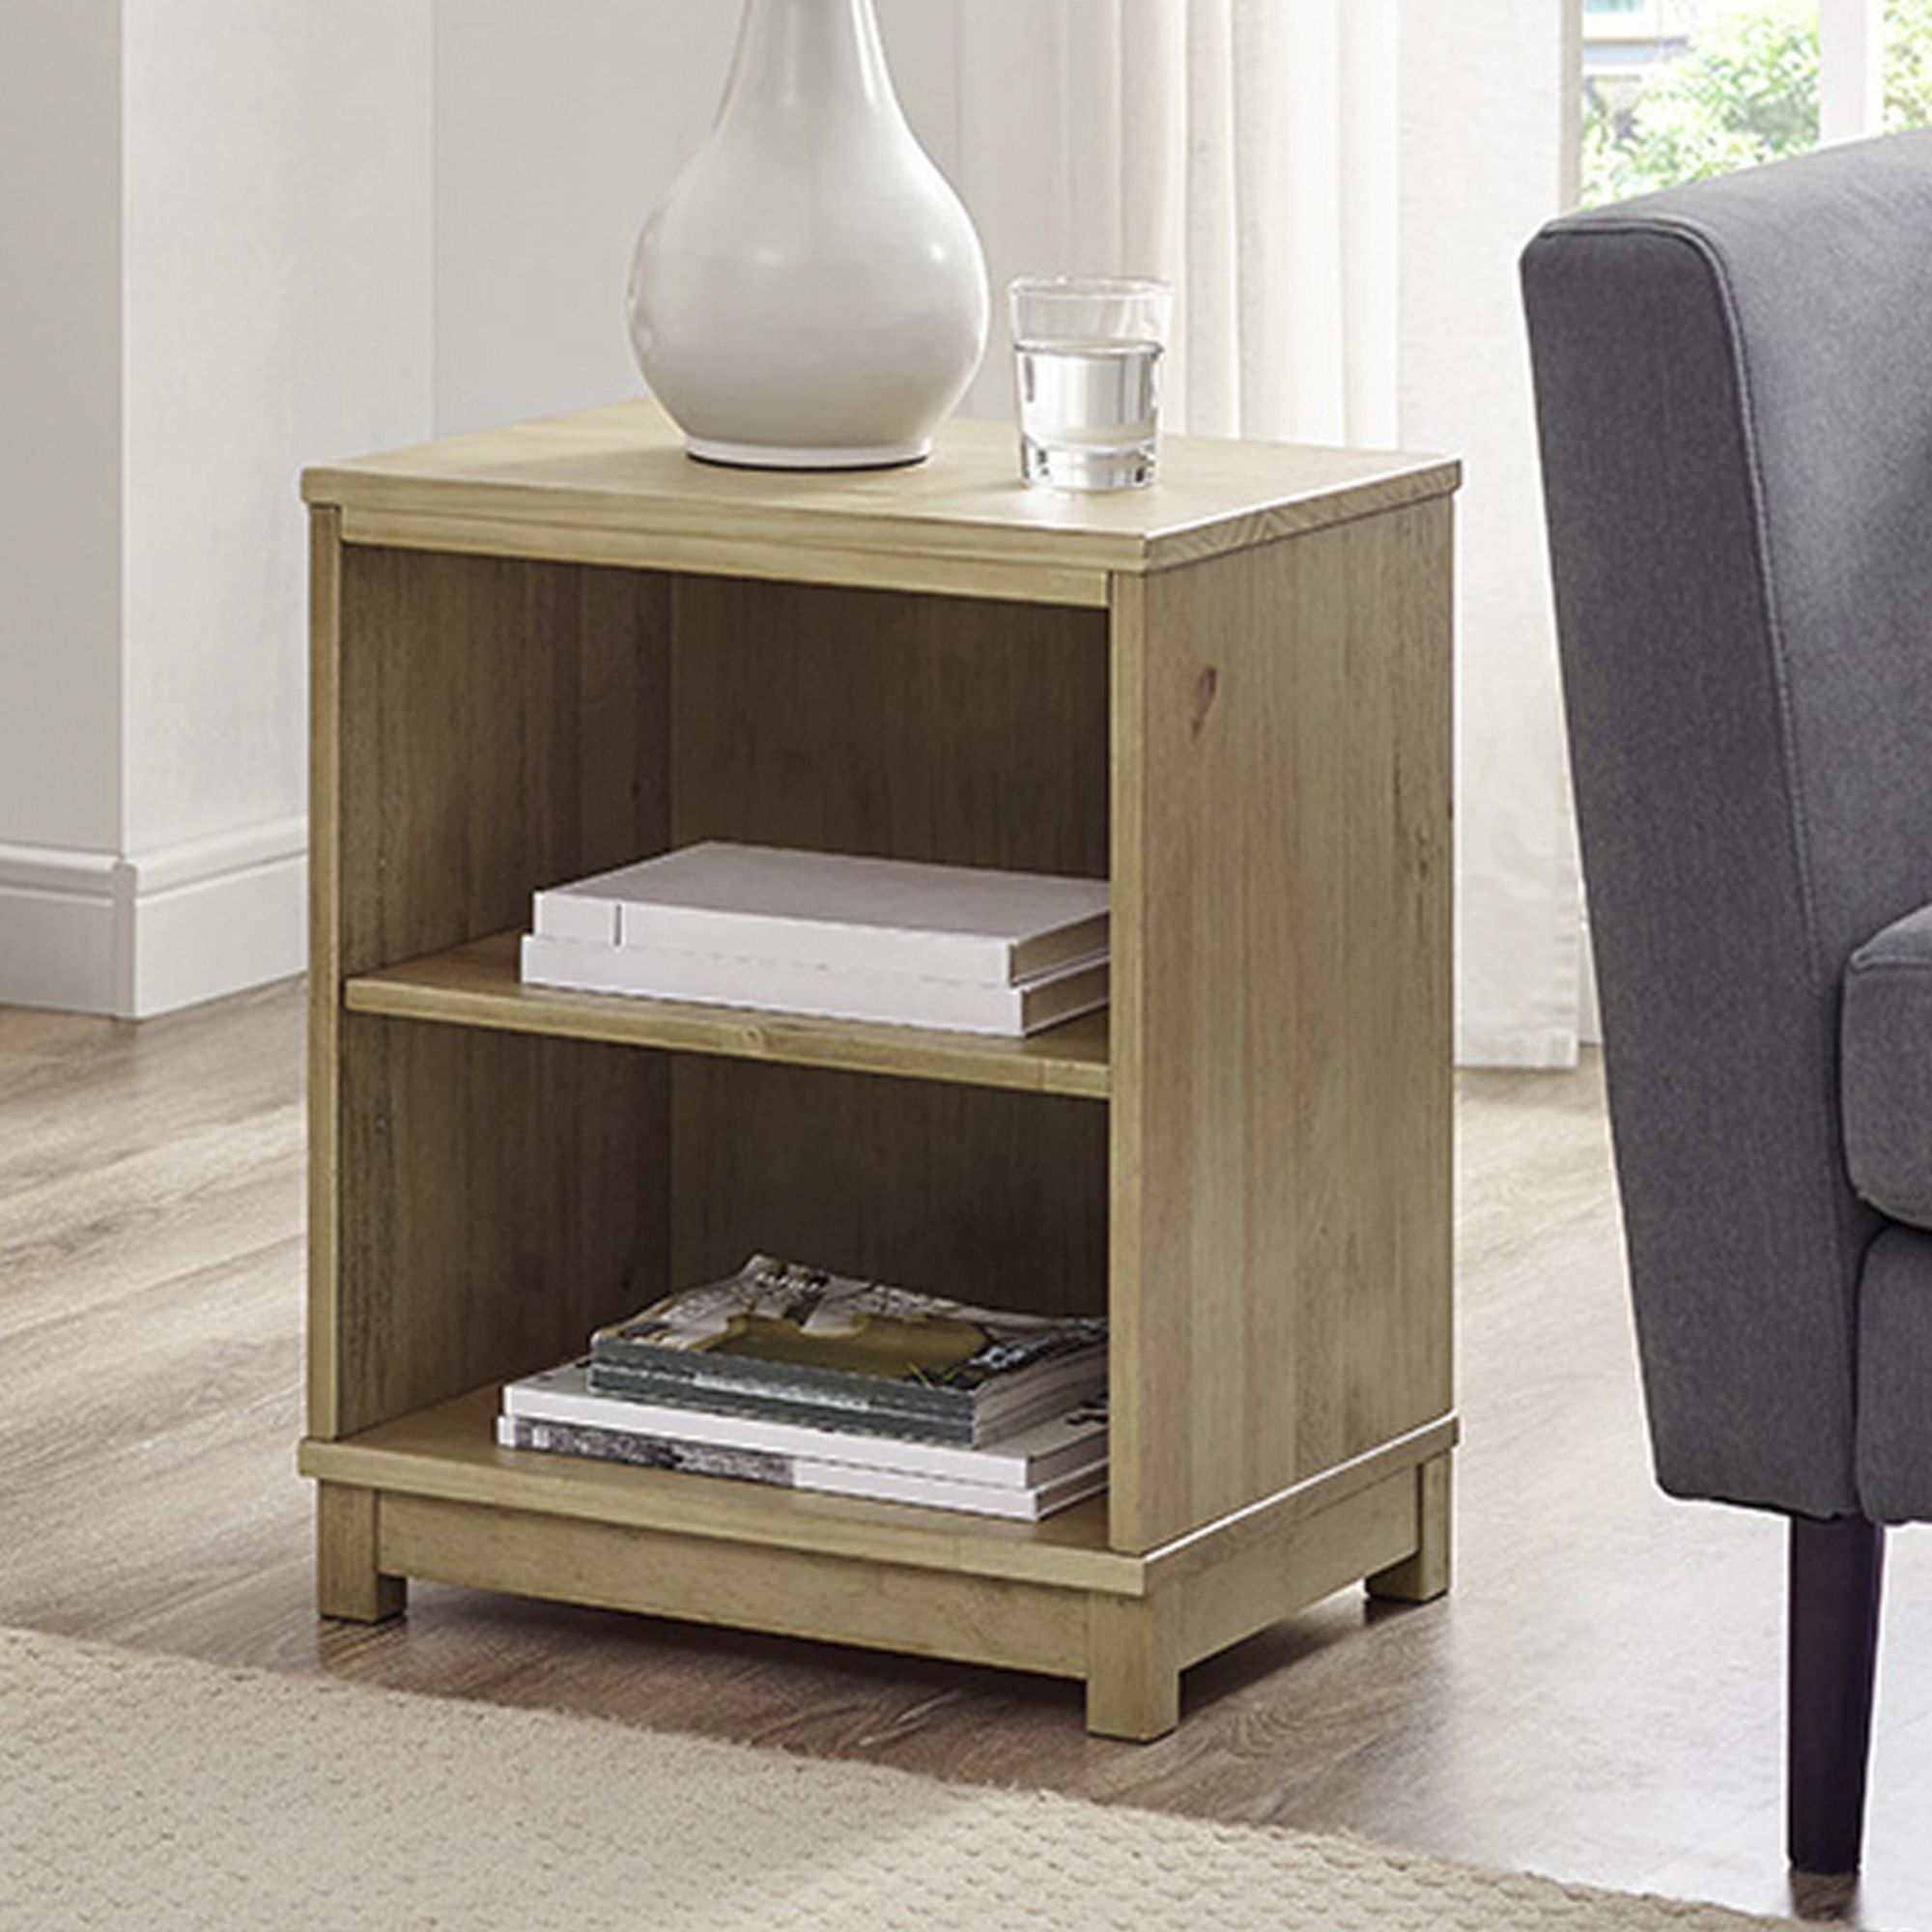 Pin By Gaitri On Coffee Table Wood Bookcase End Tables Bookcase [ 2000 x 2000 Pixel ]